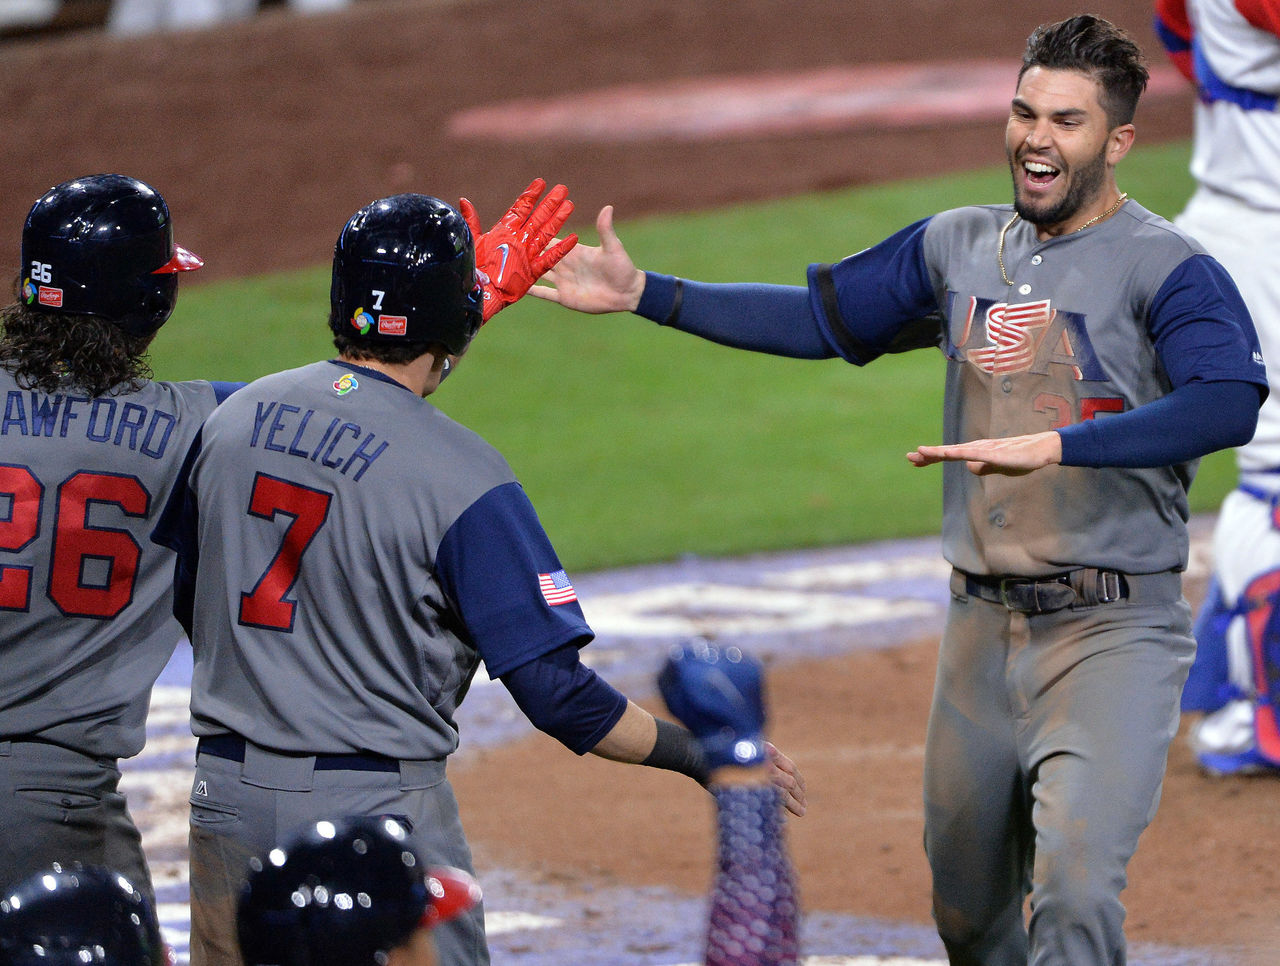 Cropped 2017 03 19t053748z 1479641092 nocid rtrmadp 3 baseball world baseball classic usa at dominican republic